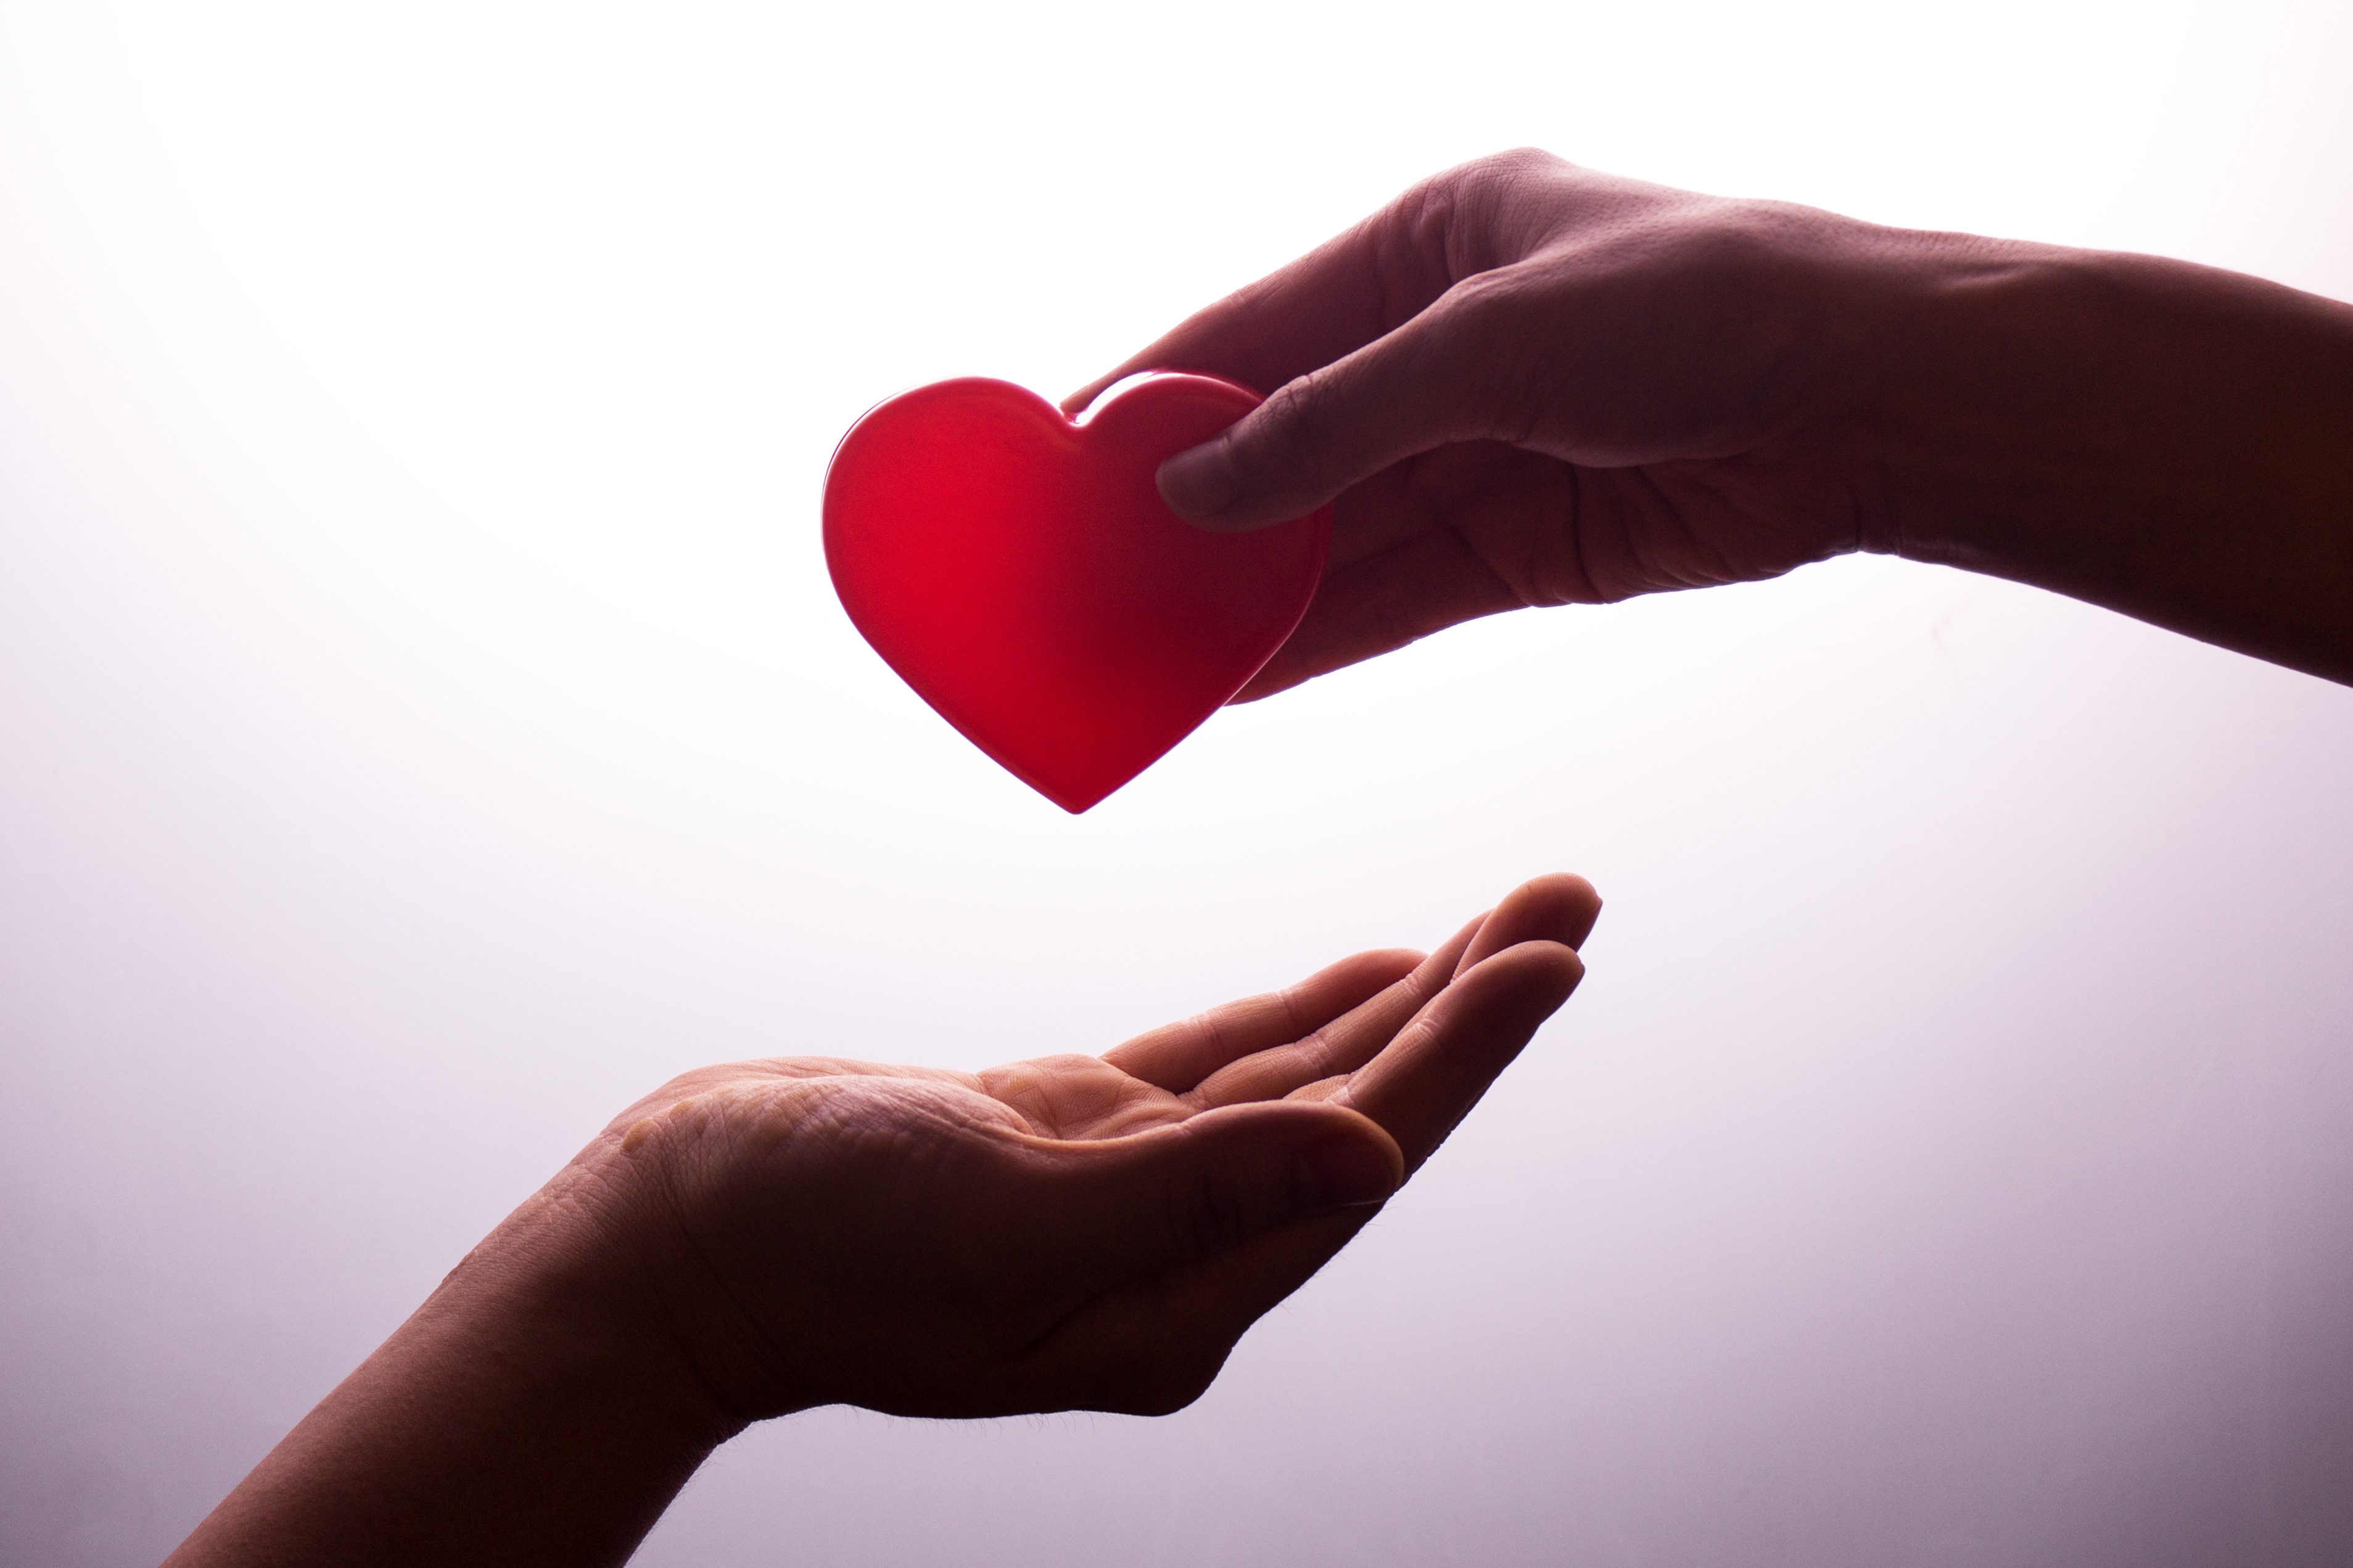 Passing heart from one hand to another